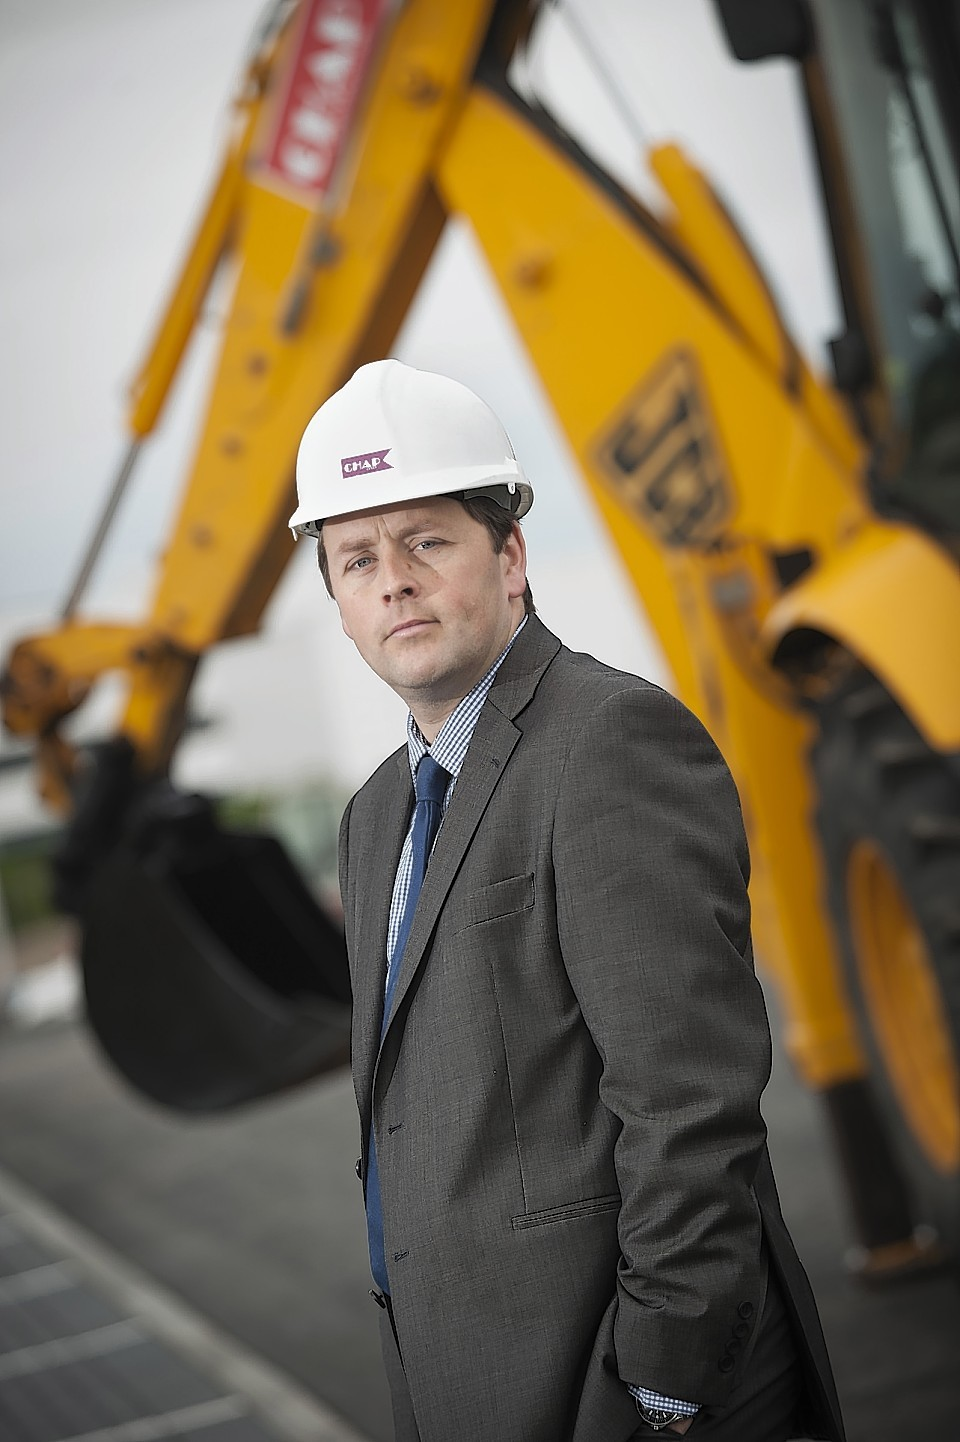 Hugh Craigie Joint managing director of CHAP group